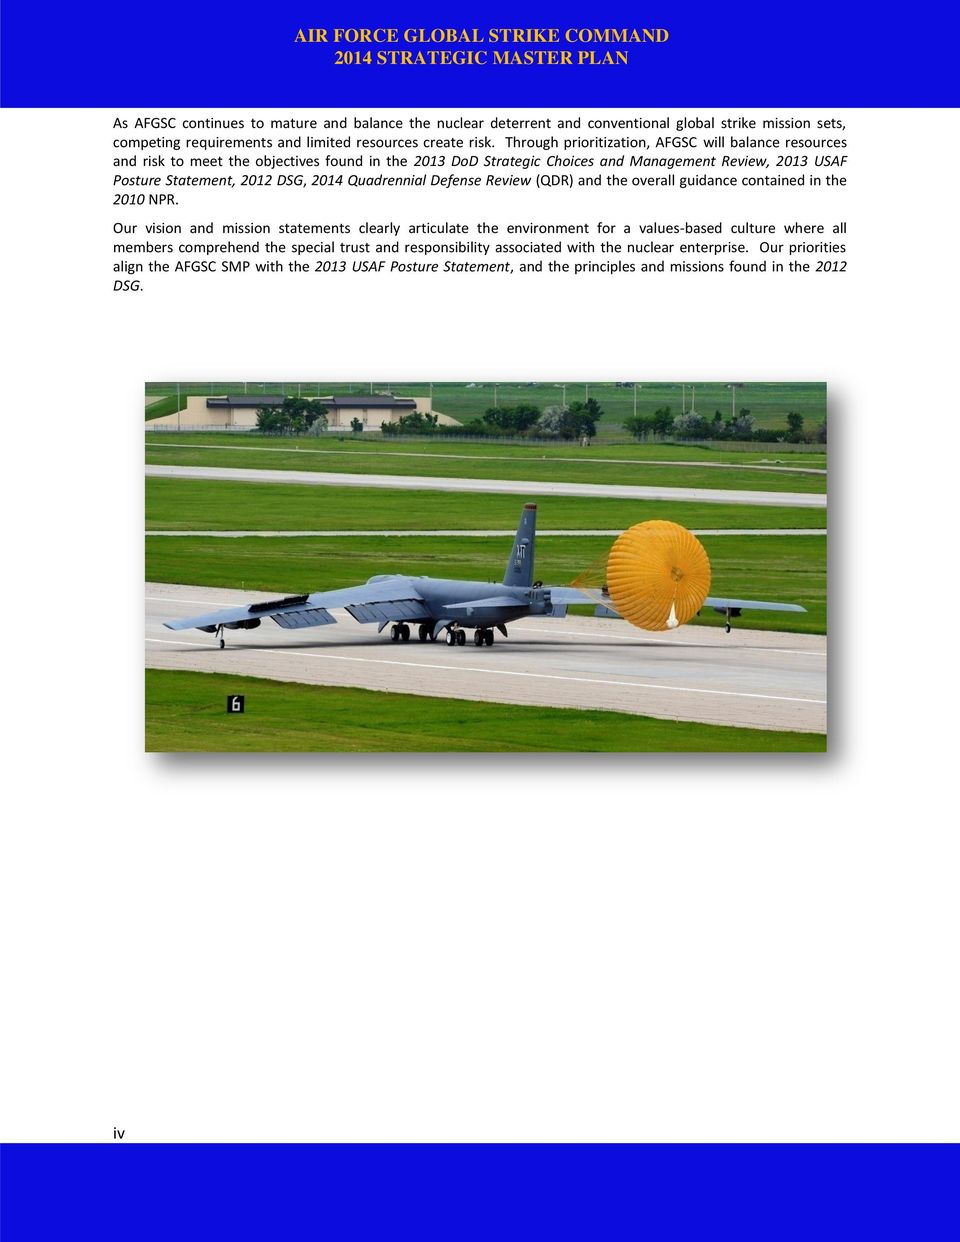 Quadrennial Defense Review (QDR) and the overall guidance contained in the 2010 NPR.